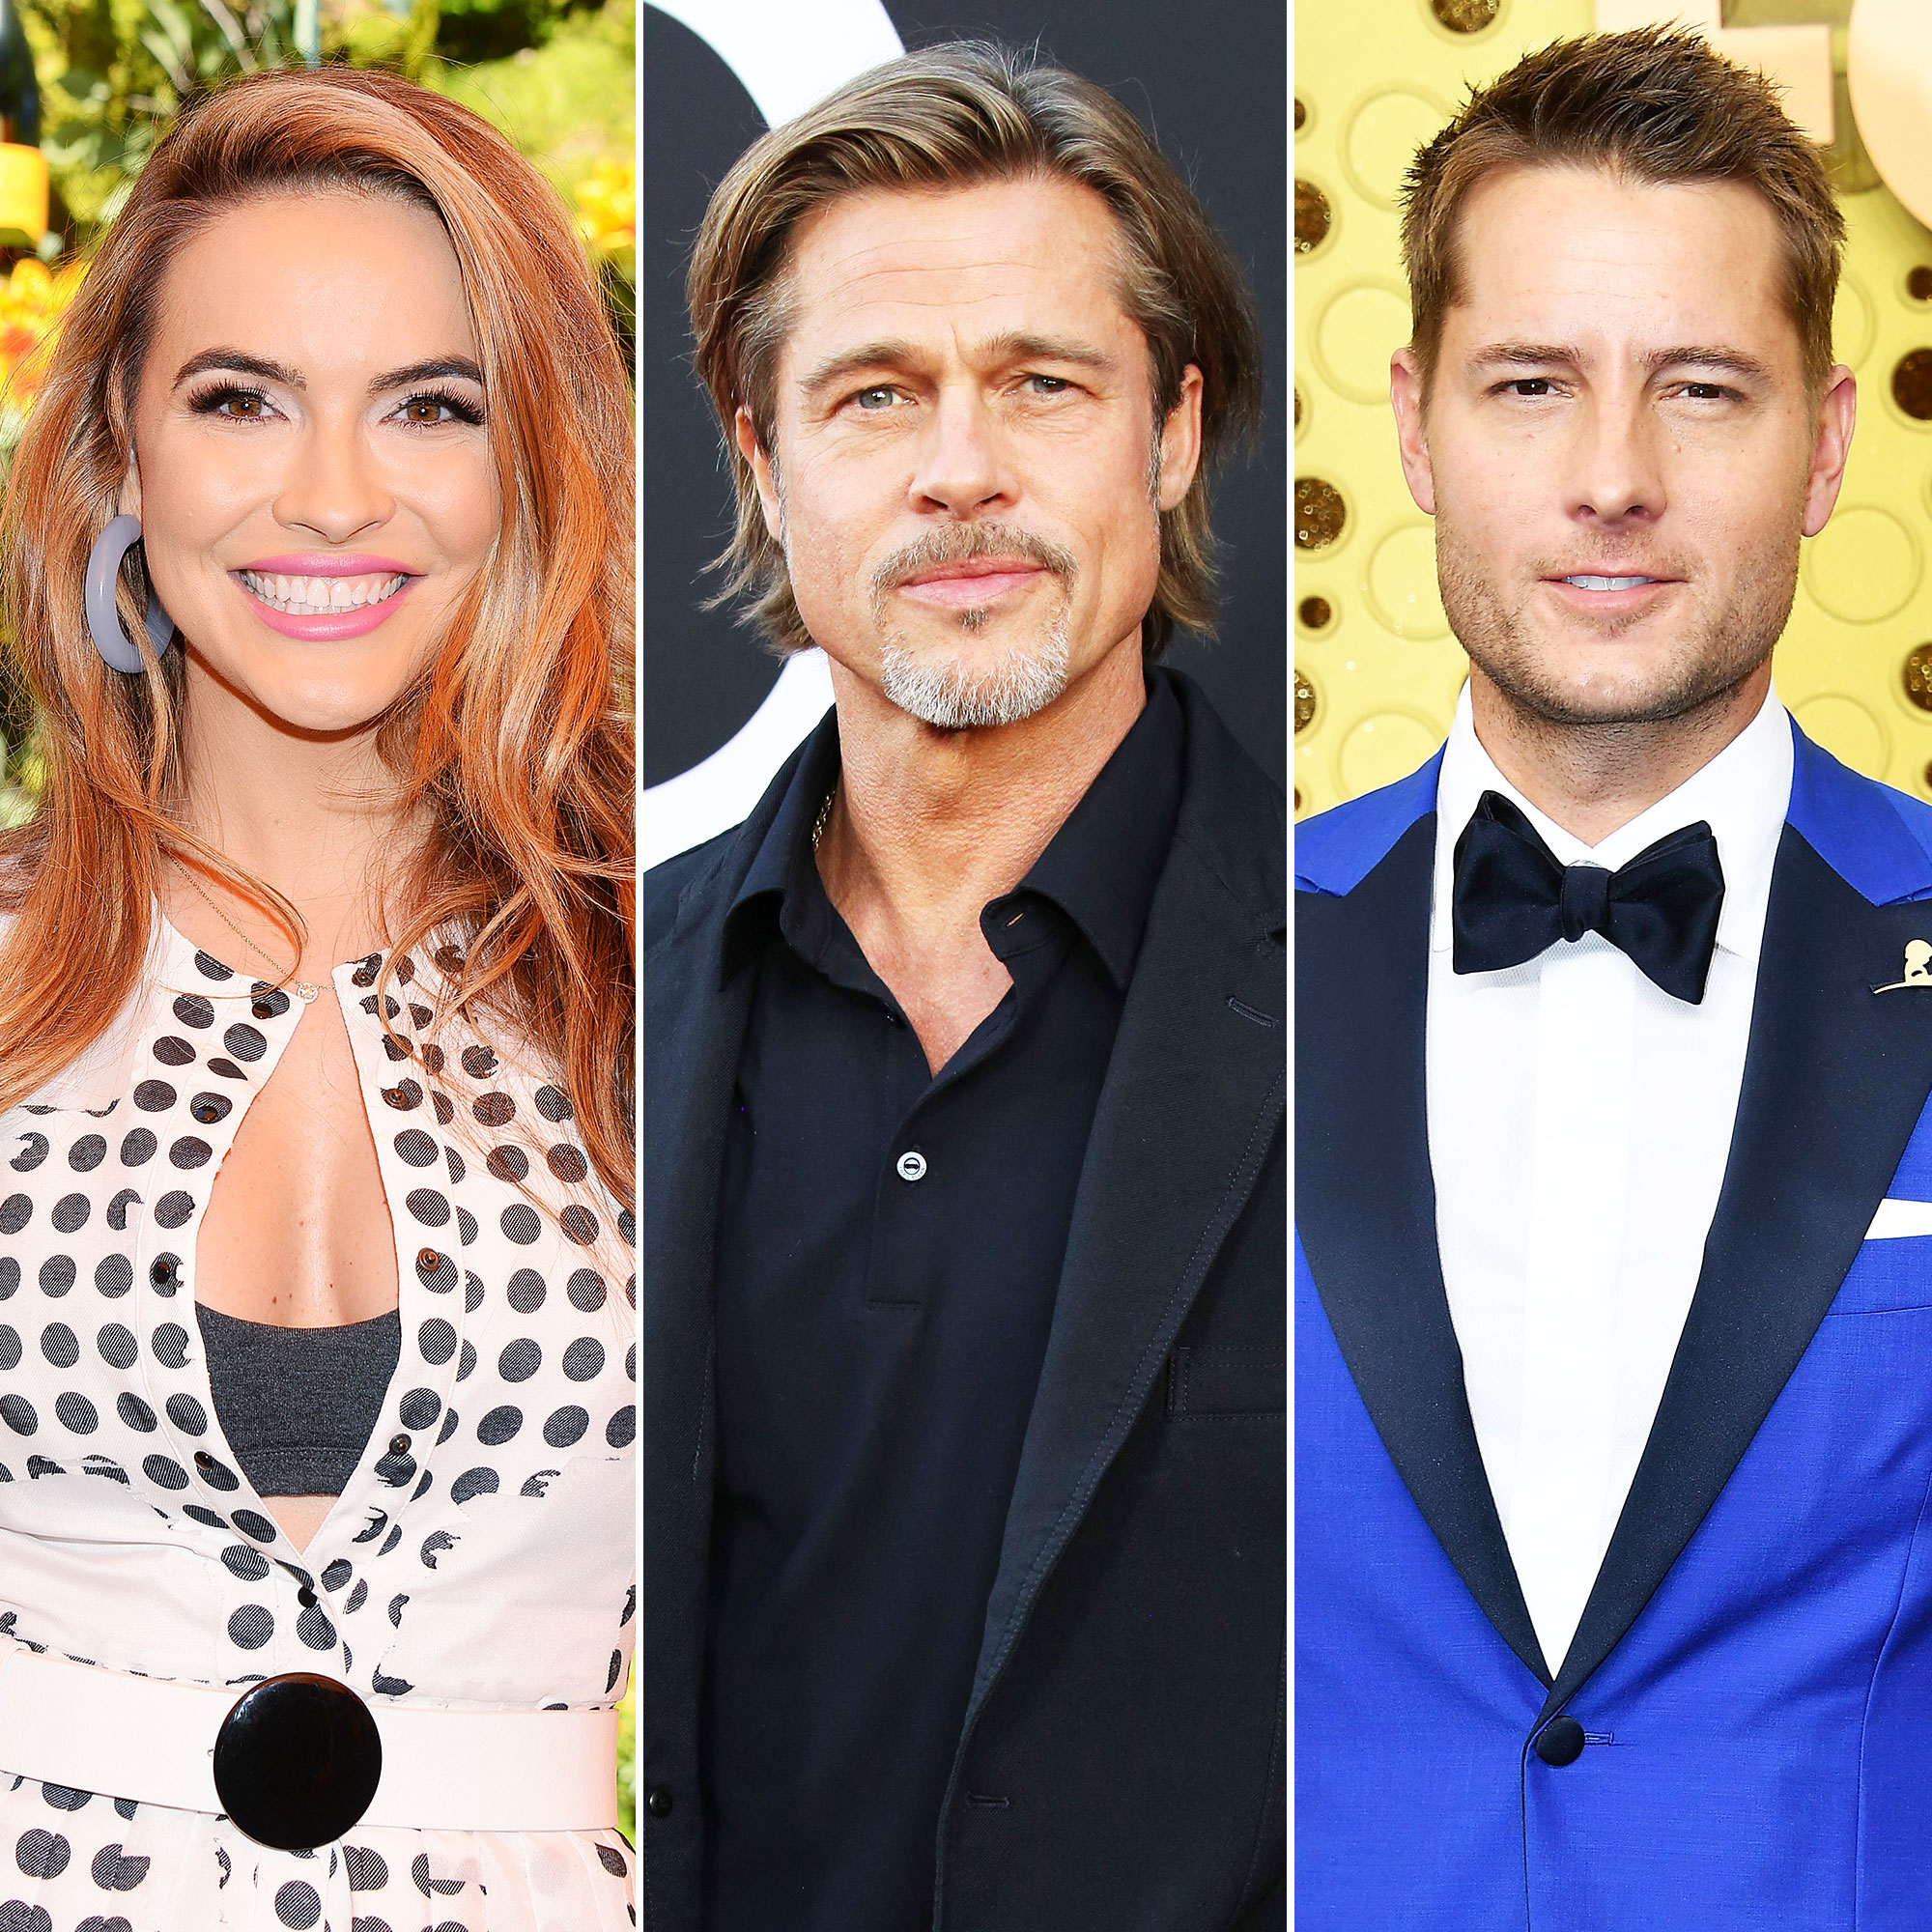 Chrishell Stause Has Her Eyes on Brad Pitt After Splitting From Justin Hartley